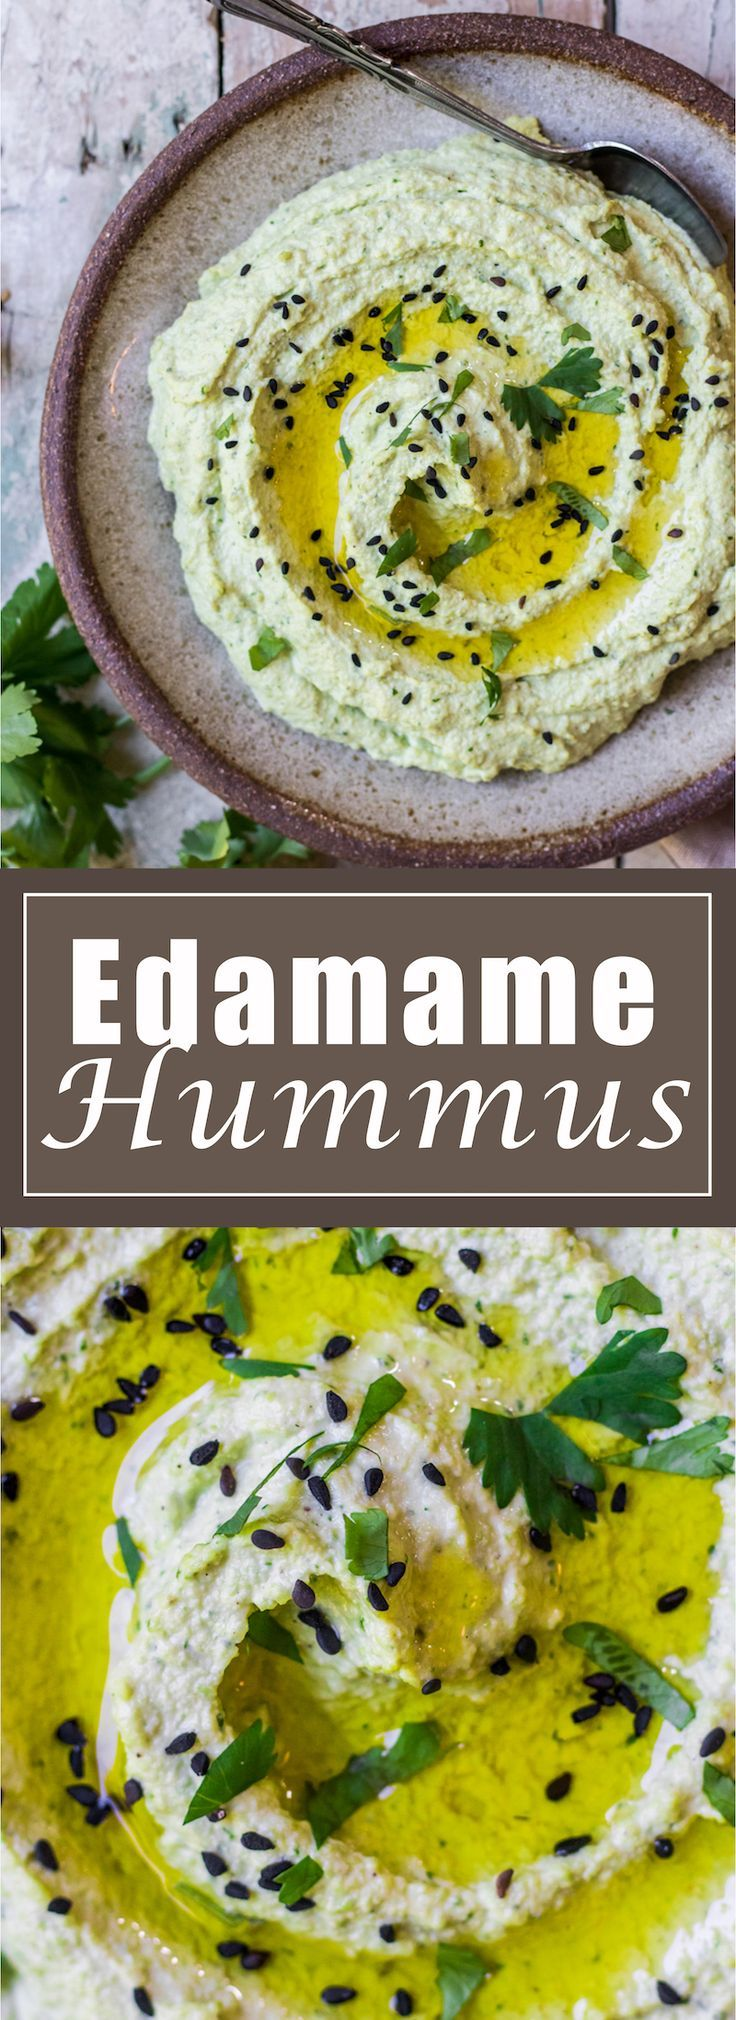 This edamame hummus will become your new favourite dip! Easy to make, healthy, and delicious! (Vegan+ Gluten-free)